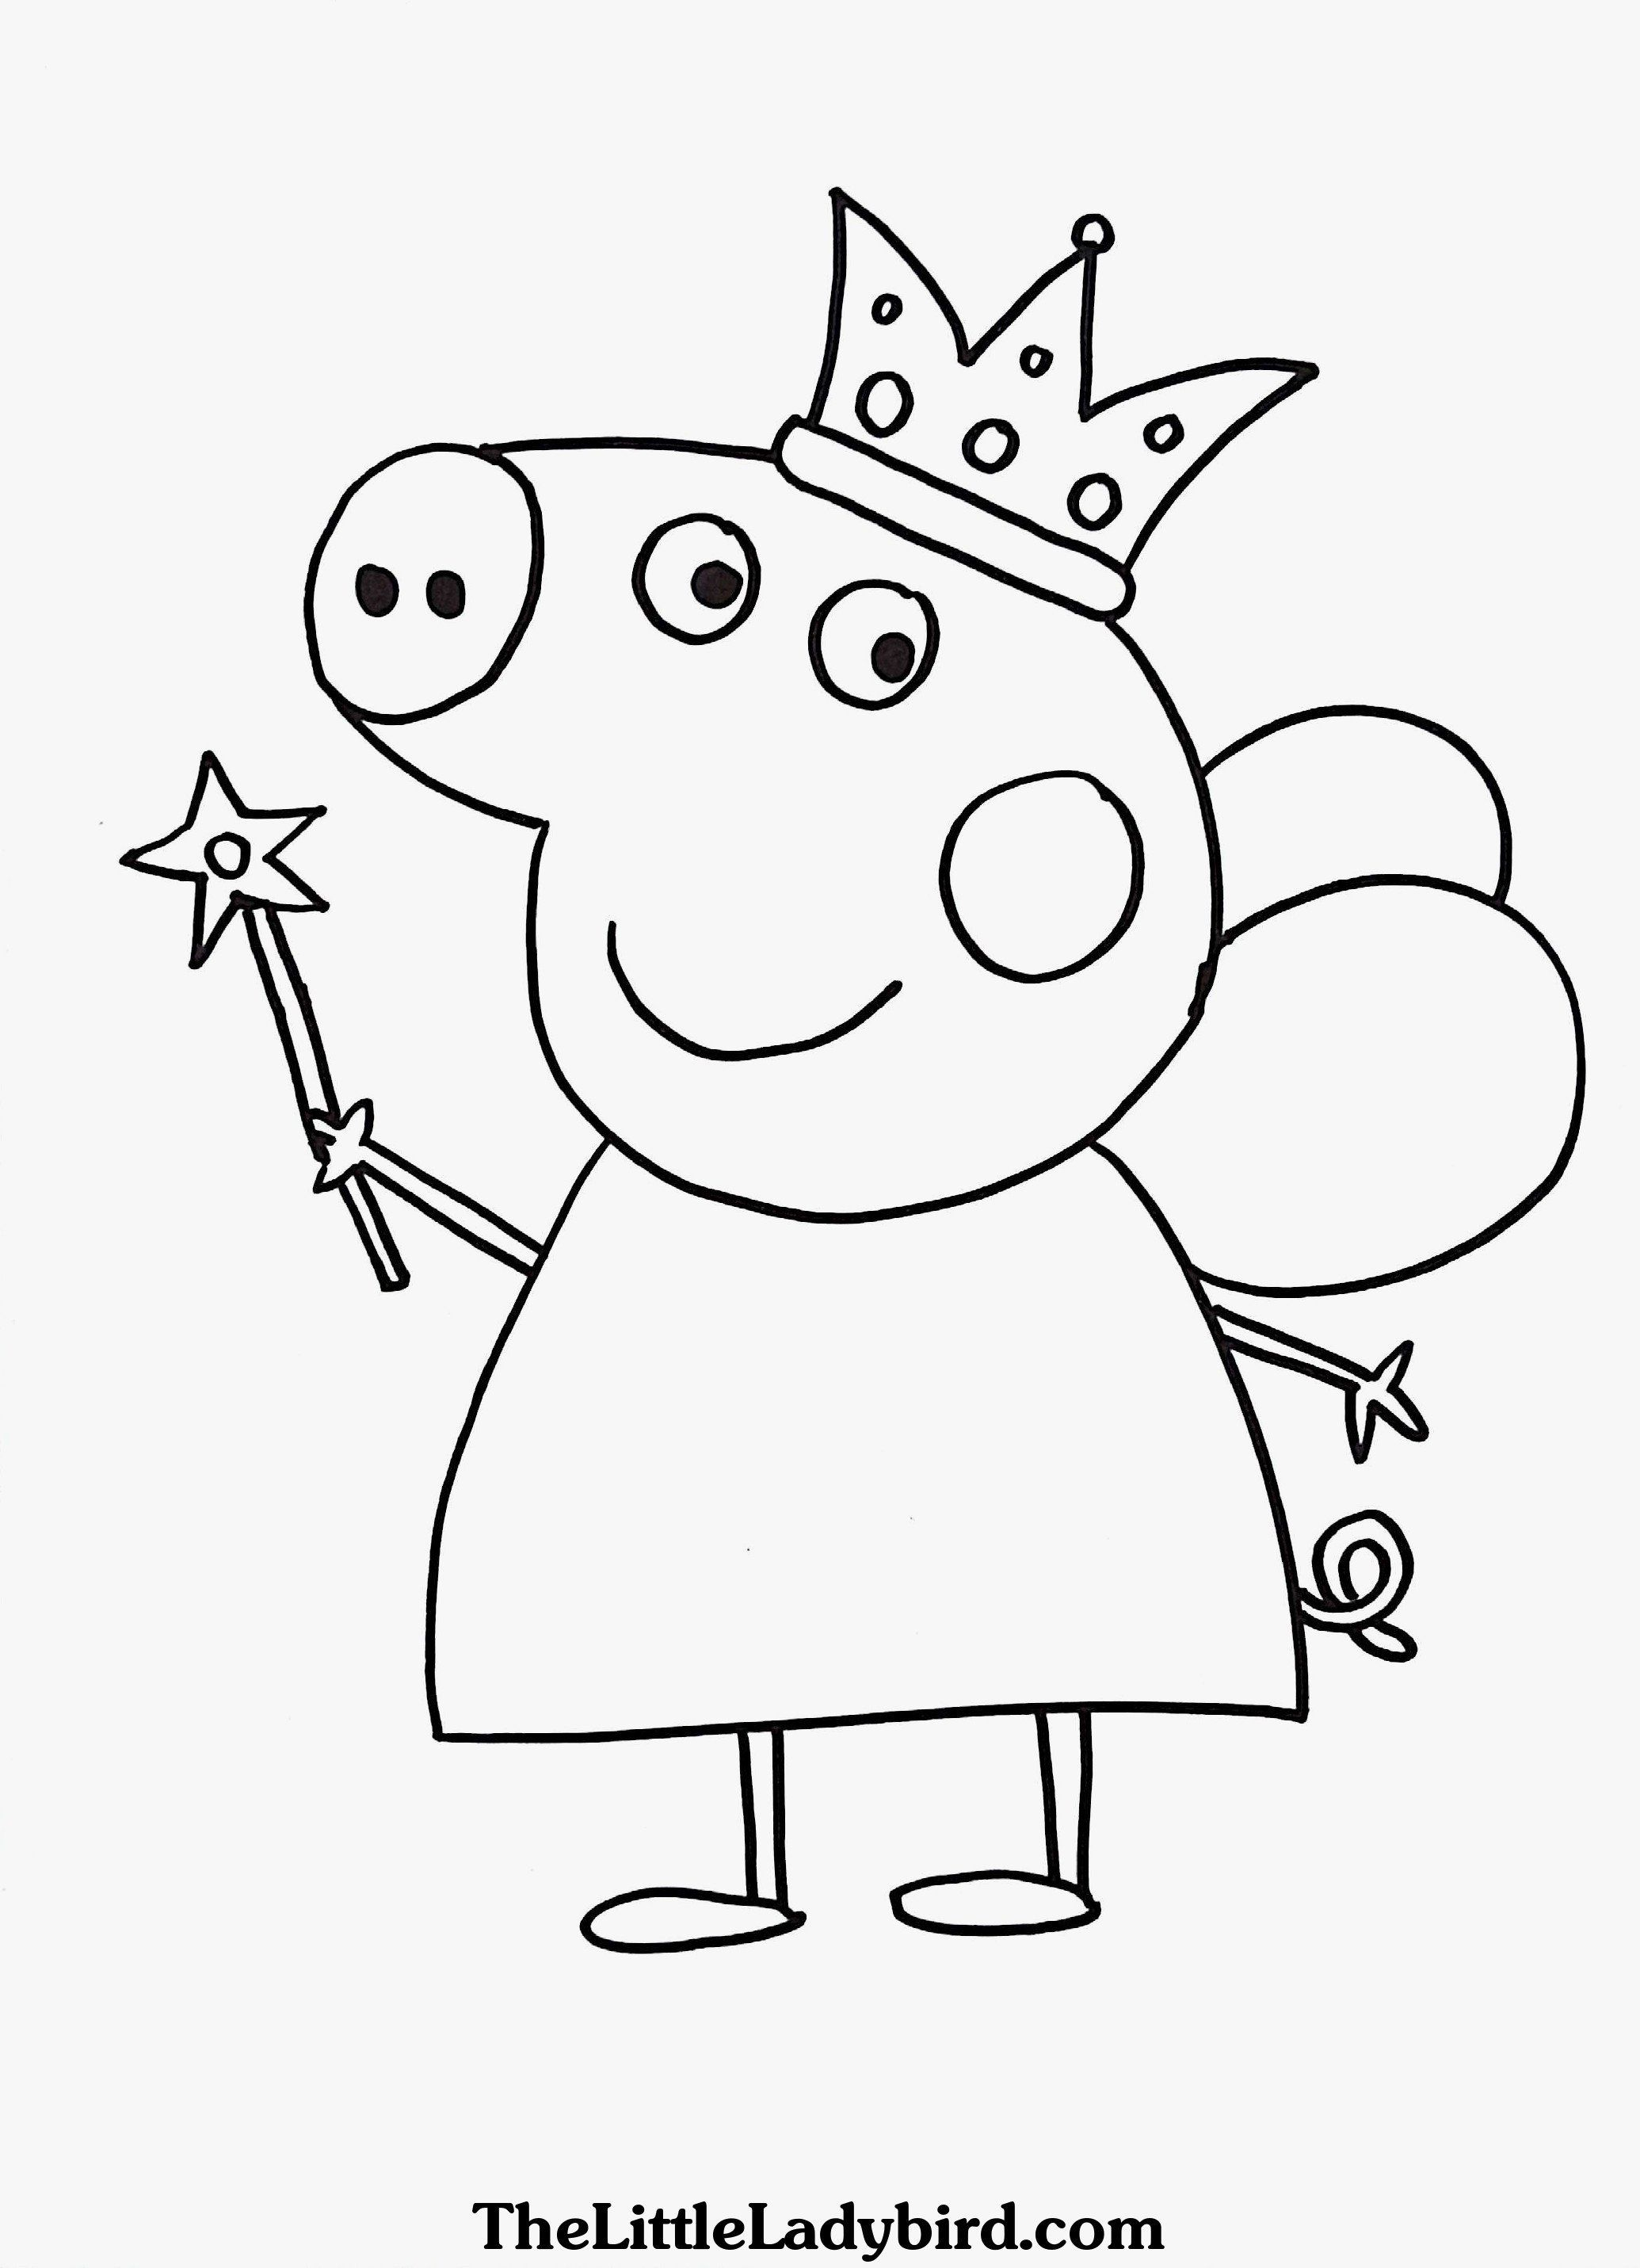 Peppa Pig Coloring Book Unique Coloring Peppa Pig Printables Image Inspirations Coloring Peppa Pig Coloring Pages Peppa Pig Colouring Birthday Coloring Pages [ 2862 x 2070 Pixel ]